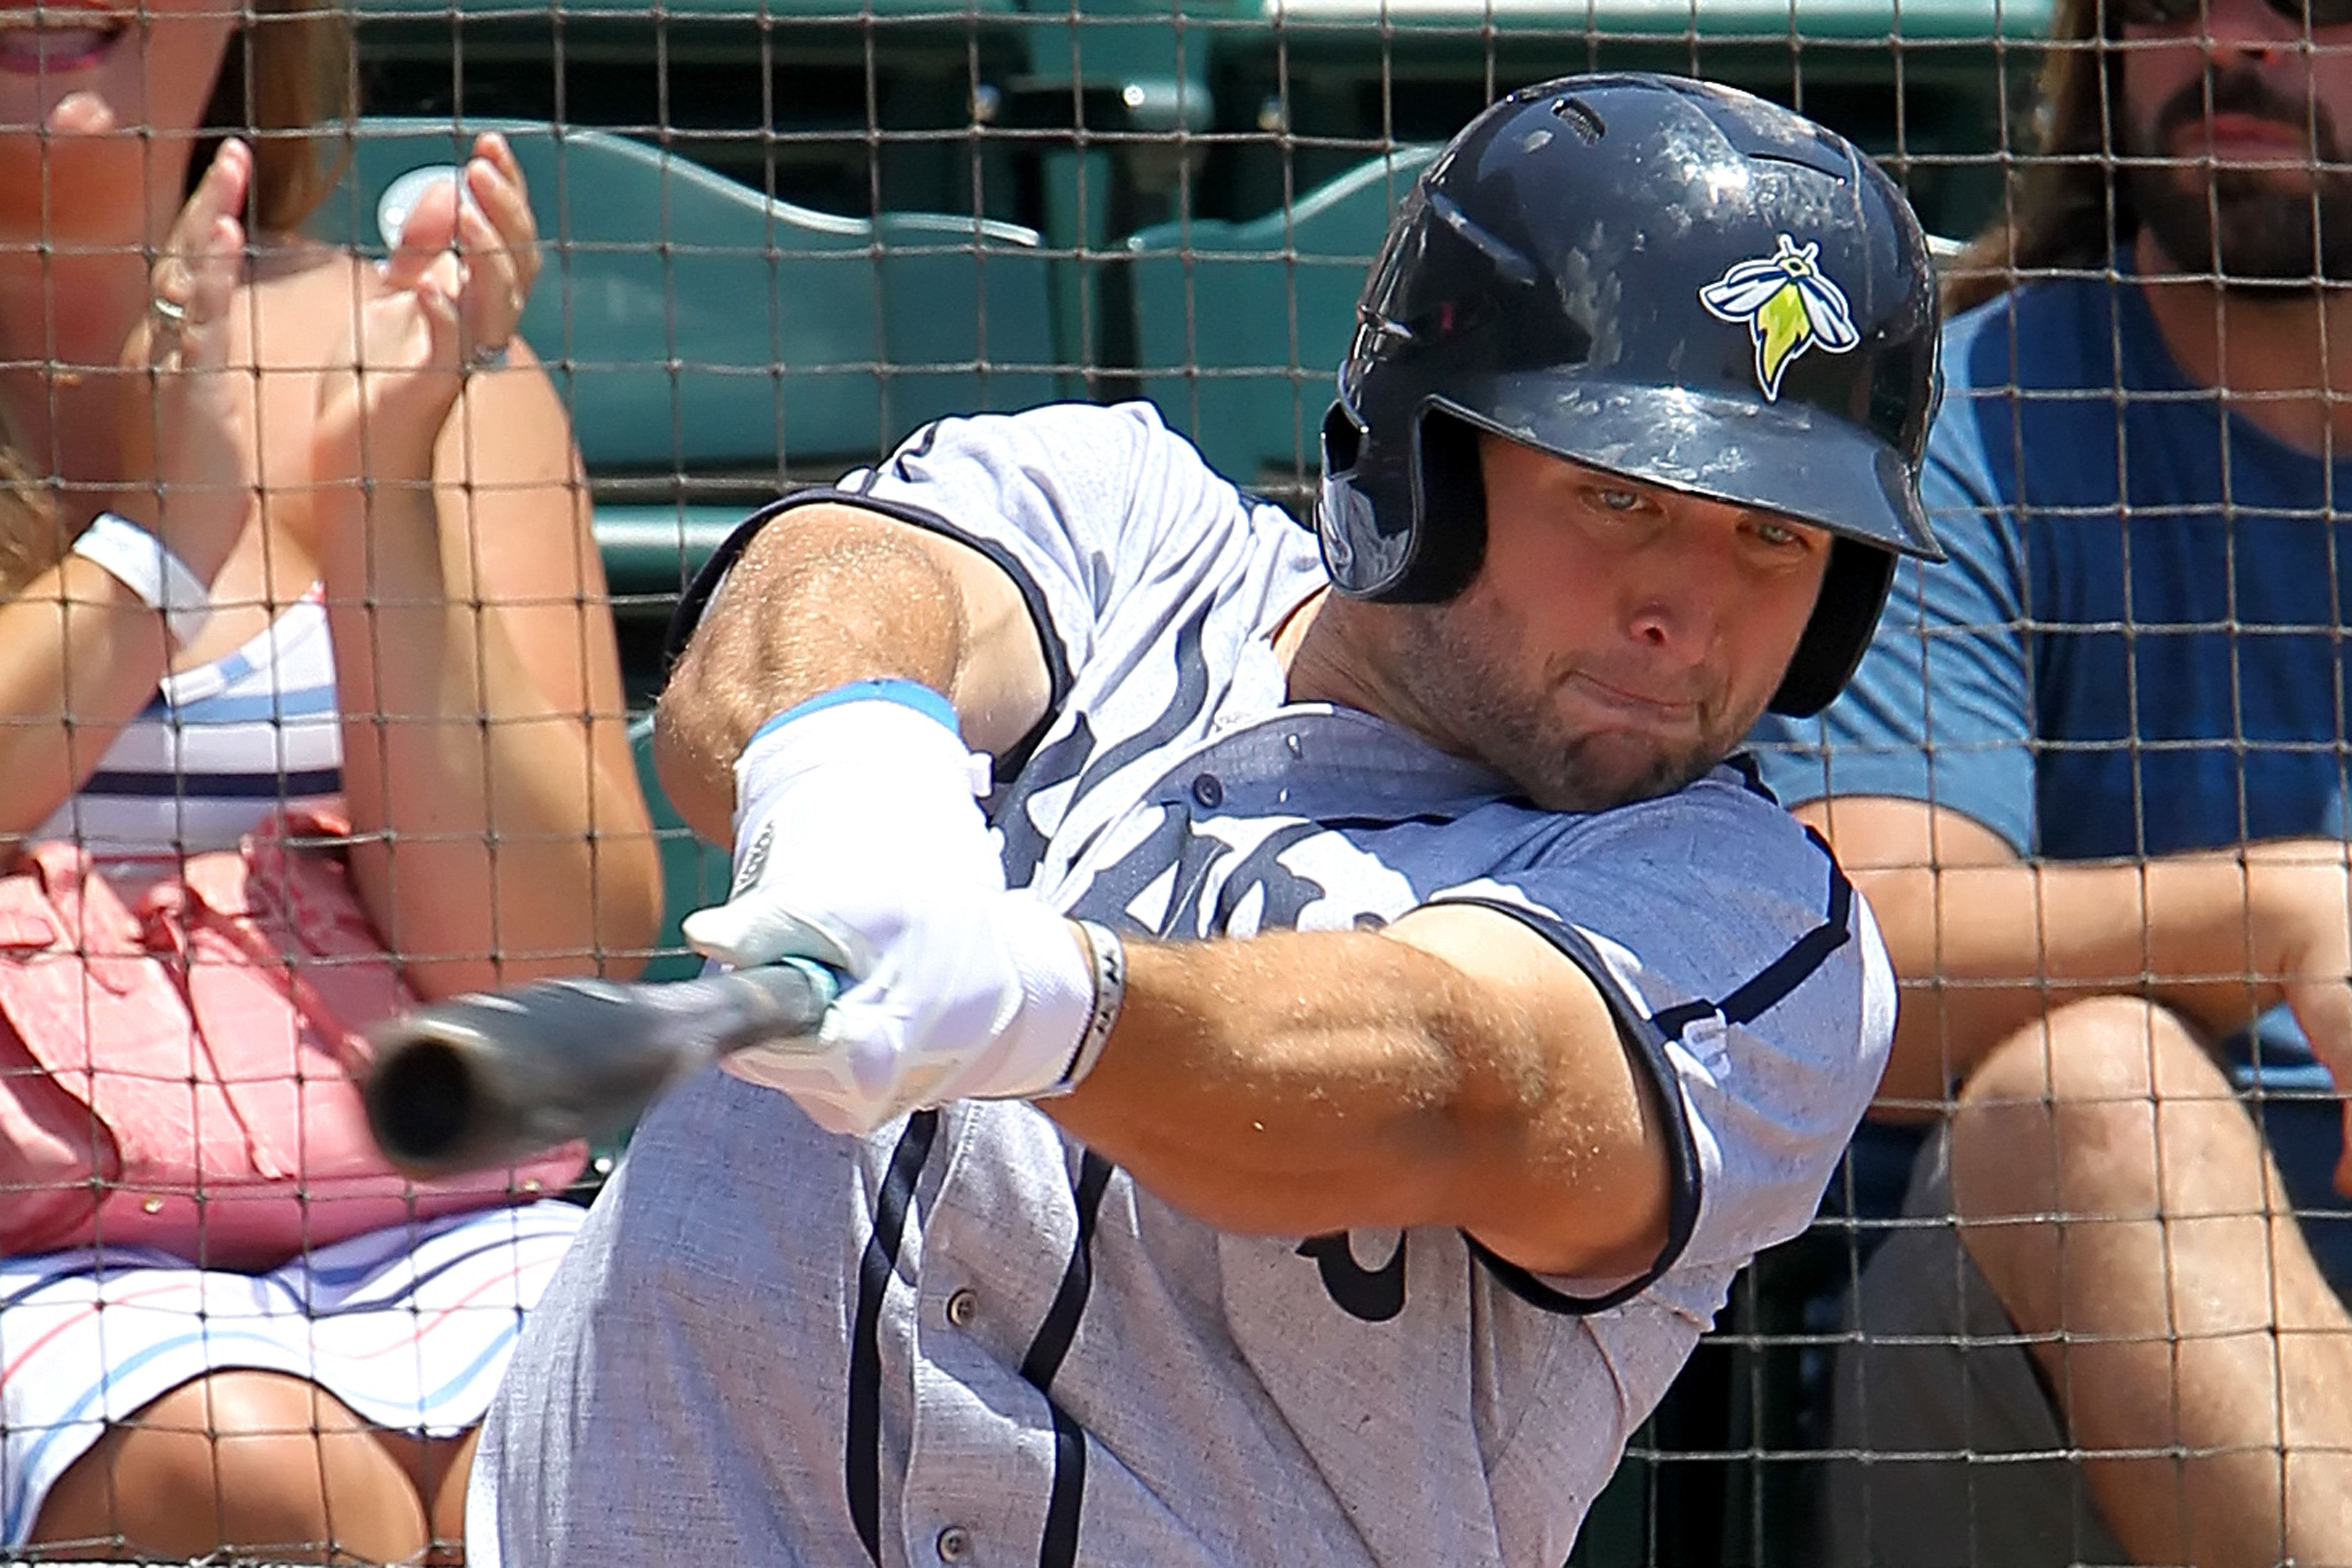 CHARLESTON,SC - JUNE 18: Tim Tebow of the Fireflies warms up on the on deck circle during the minor league game between the Columbia Fireflies and the Charleston RiverDogs on June 18, 2017 at AT&T Stadium in Charleston, South Carolina. (Photo by Cliff Welch/Icon Sportswire via Getty Images)